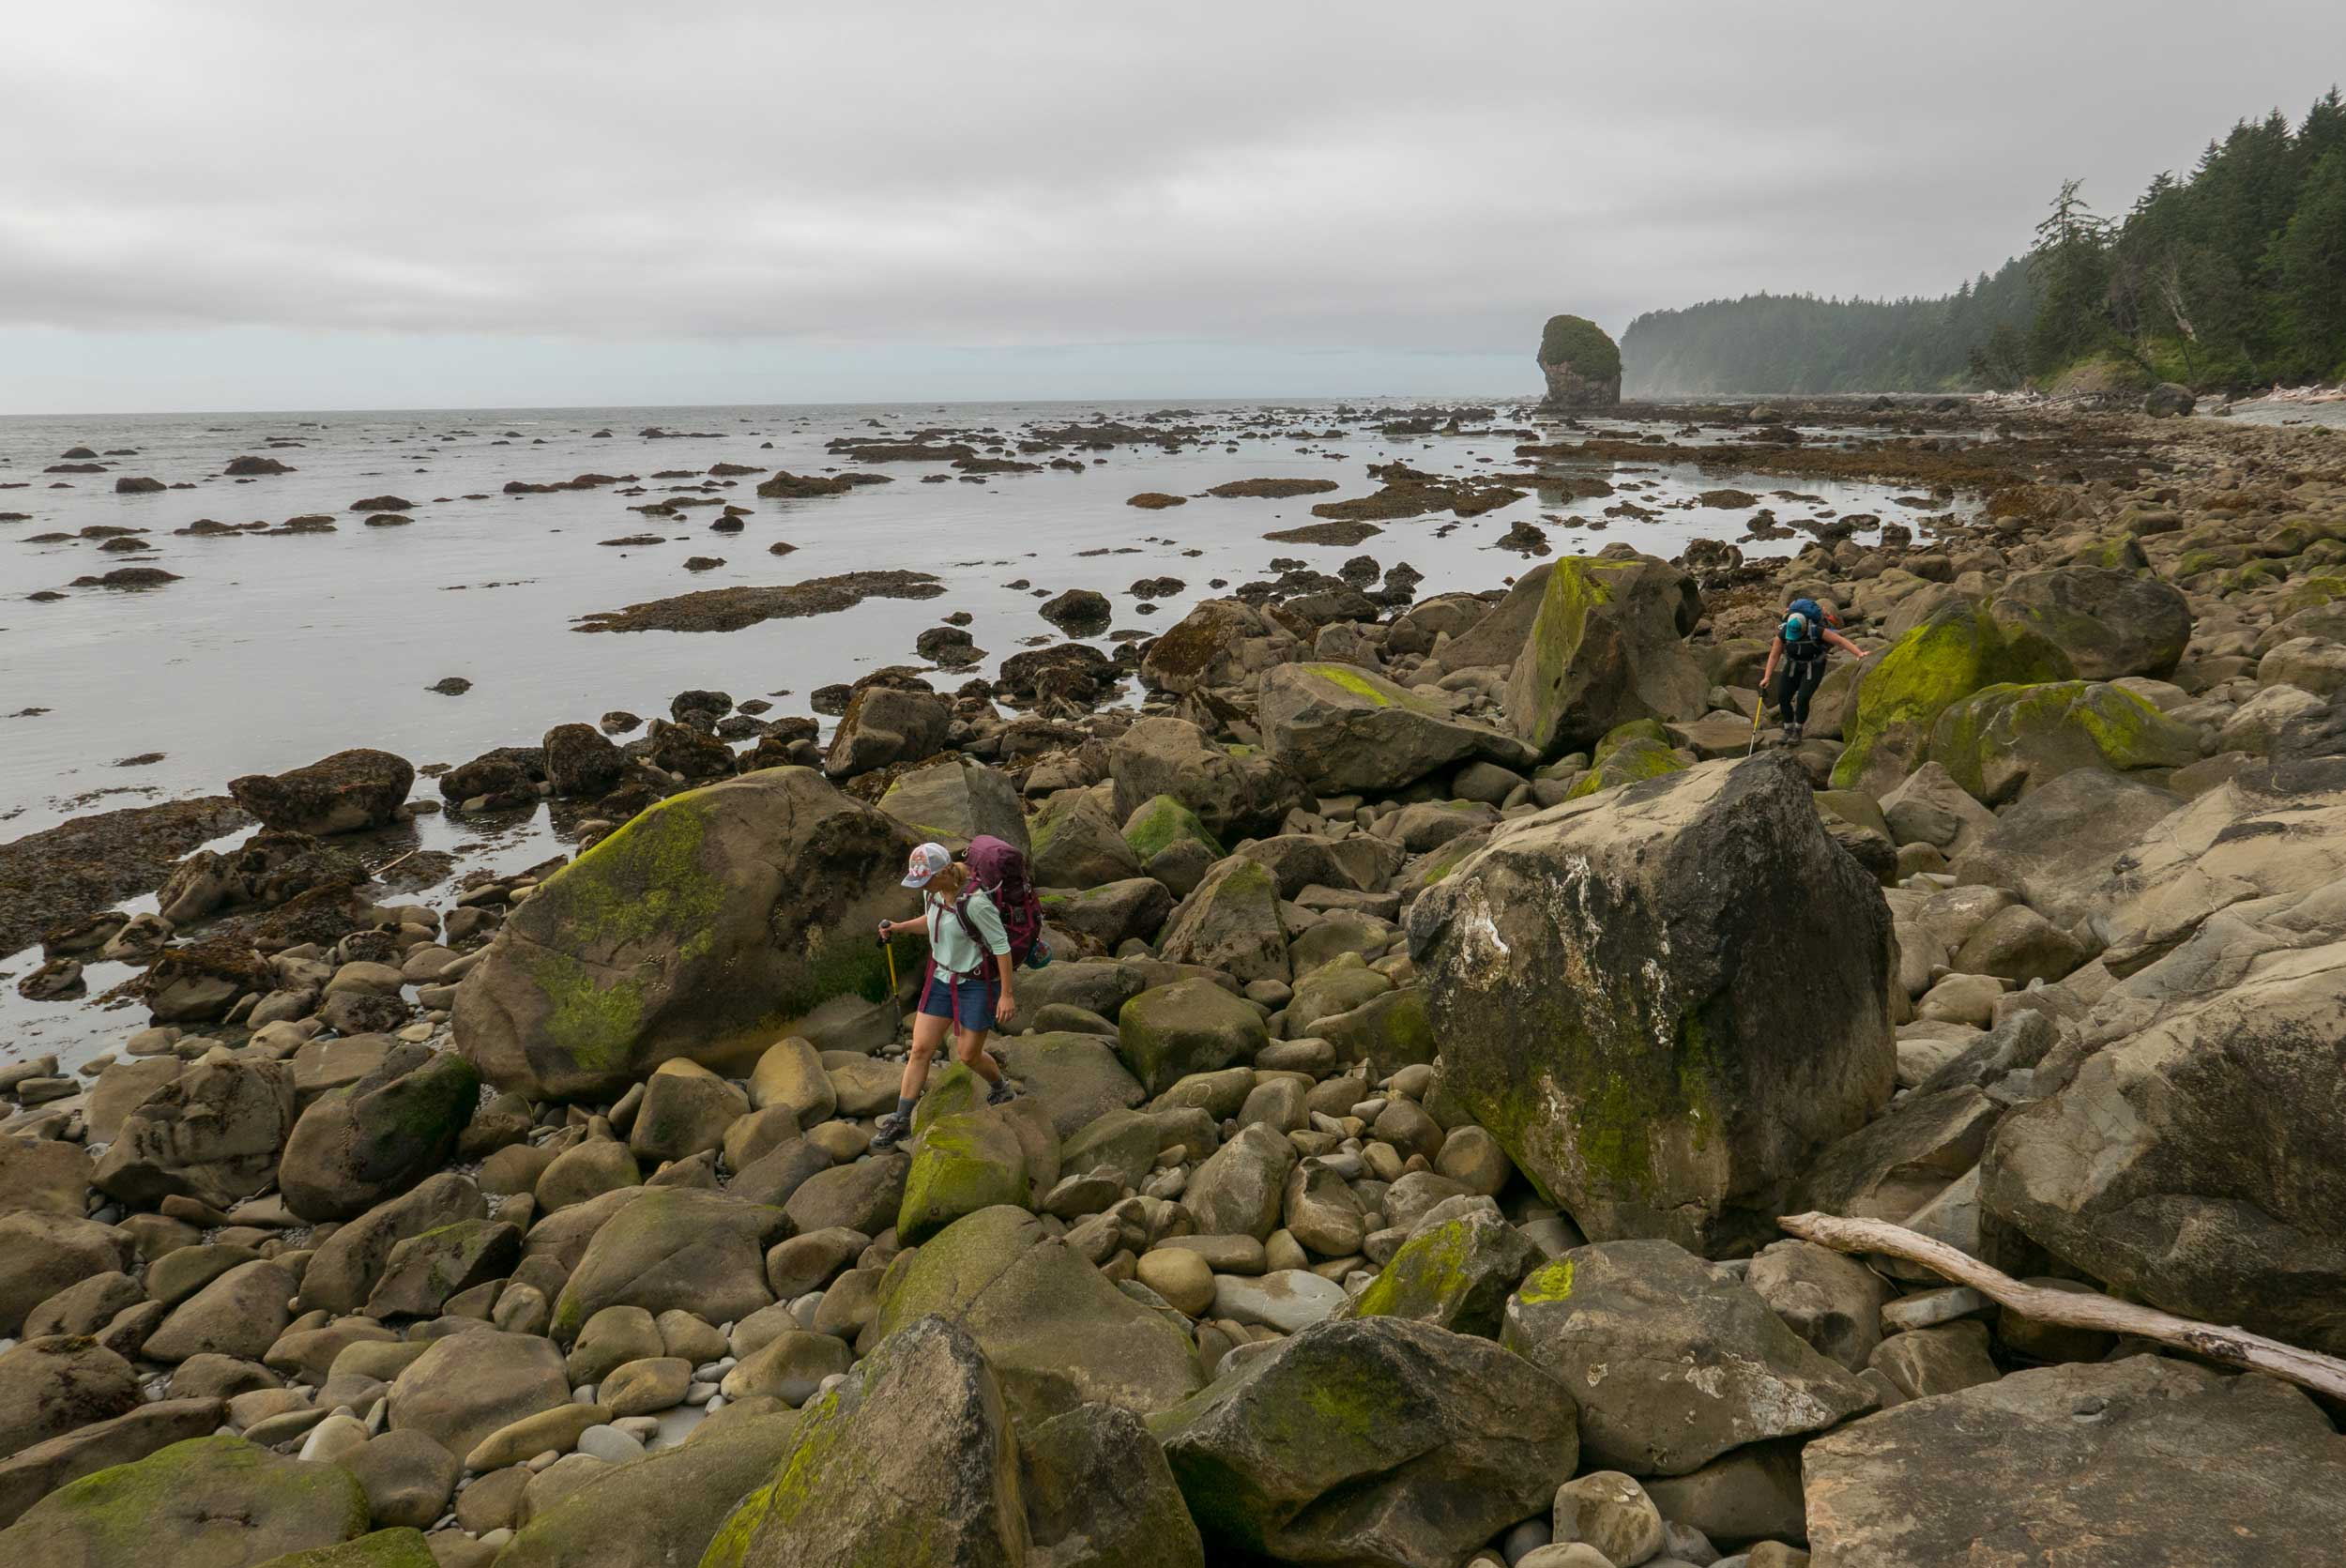 Hiking through rocky coast on Olympic Peninsula